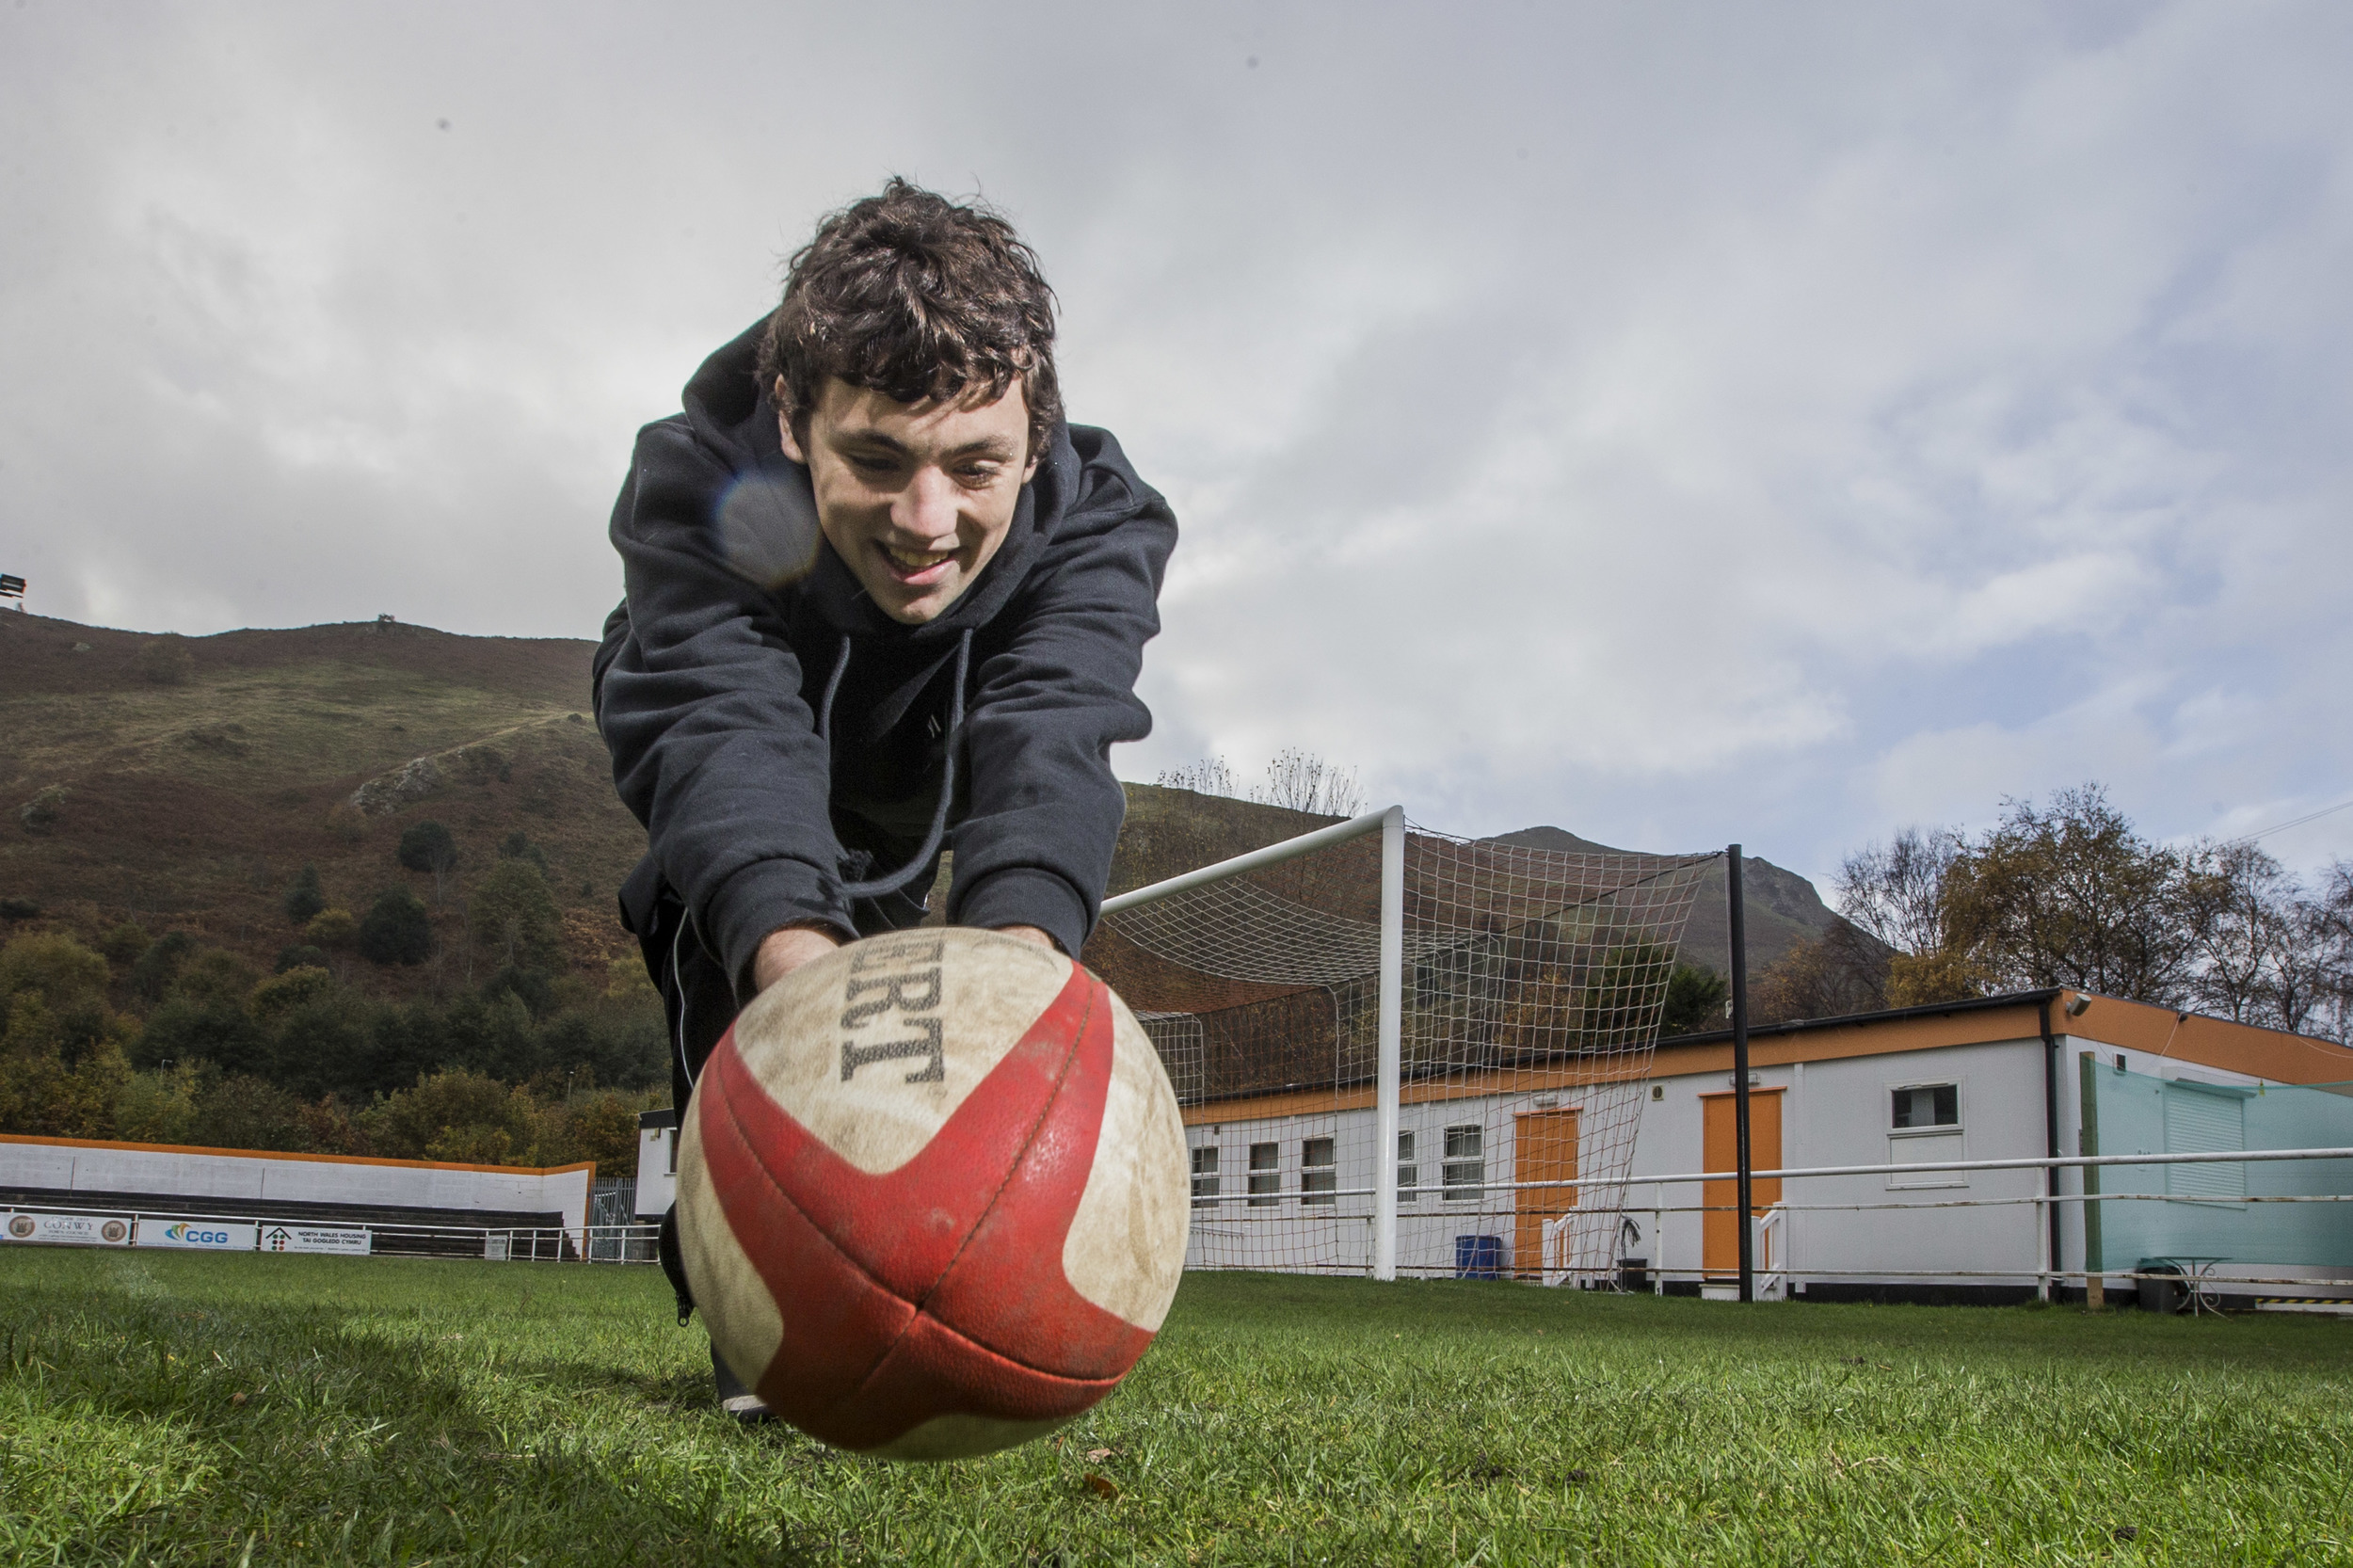 Bobi, 19 came through a Vi-Ability programme. He now works for Vi-Ability and has now achieved his Level 2 Rugby refereeing qualification.